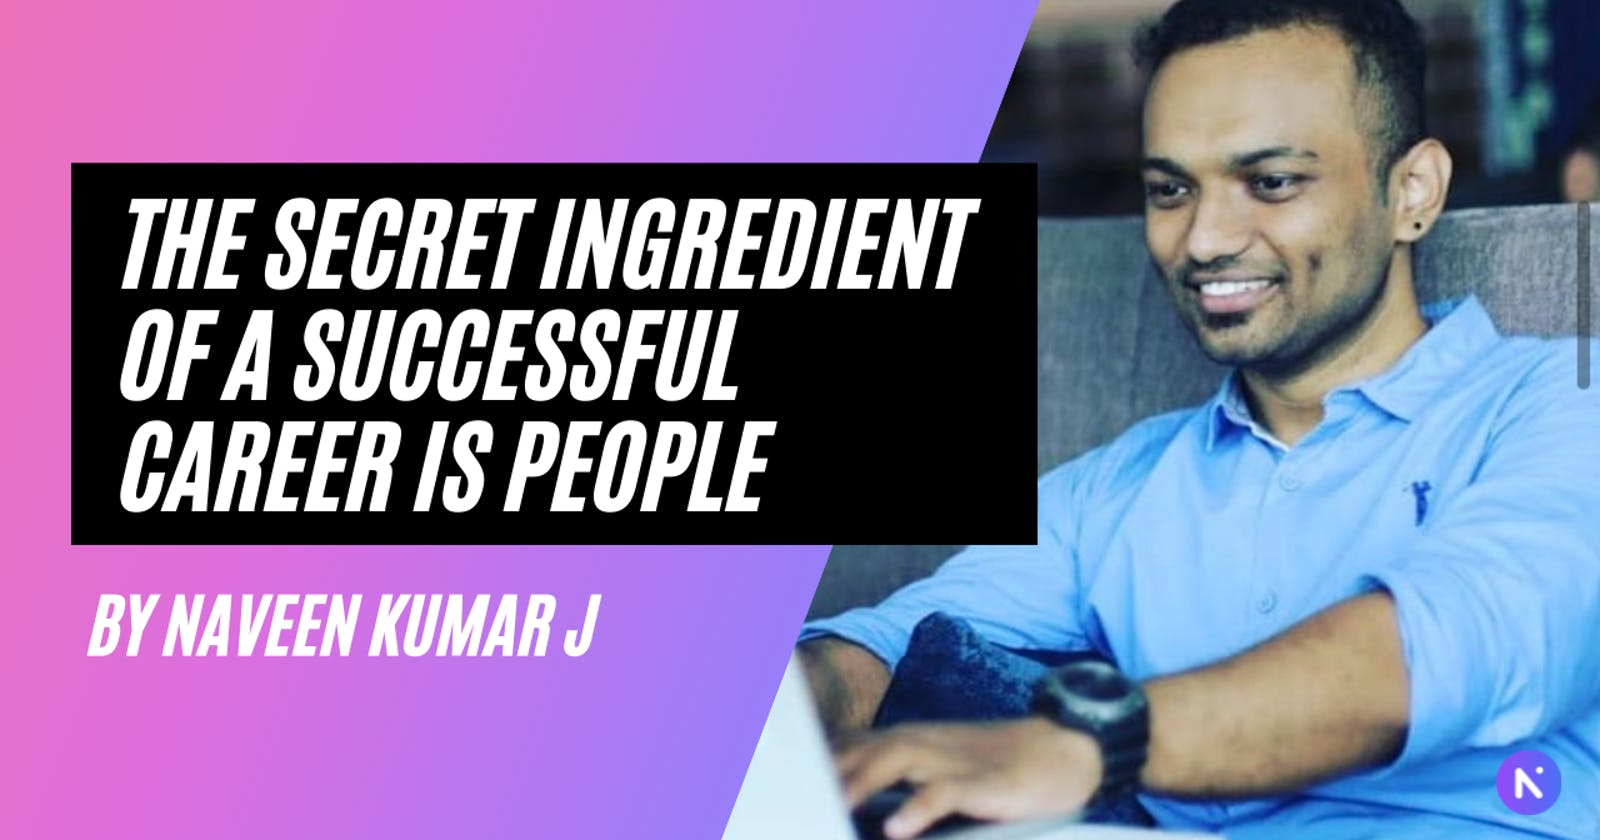 The Secret Ingredient of a Successful Career Is People